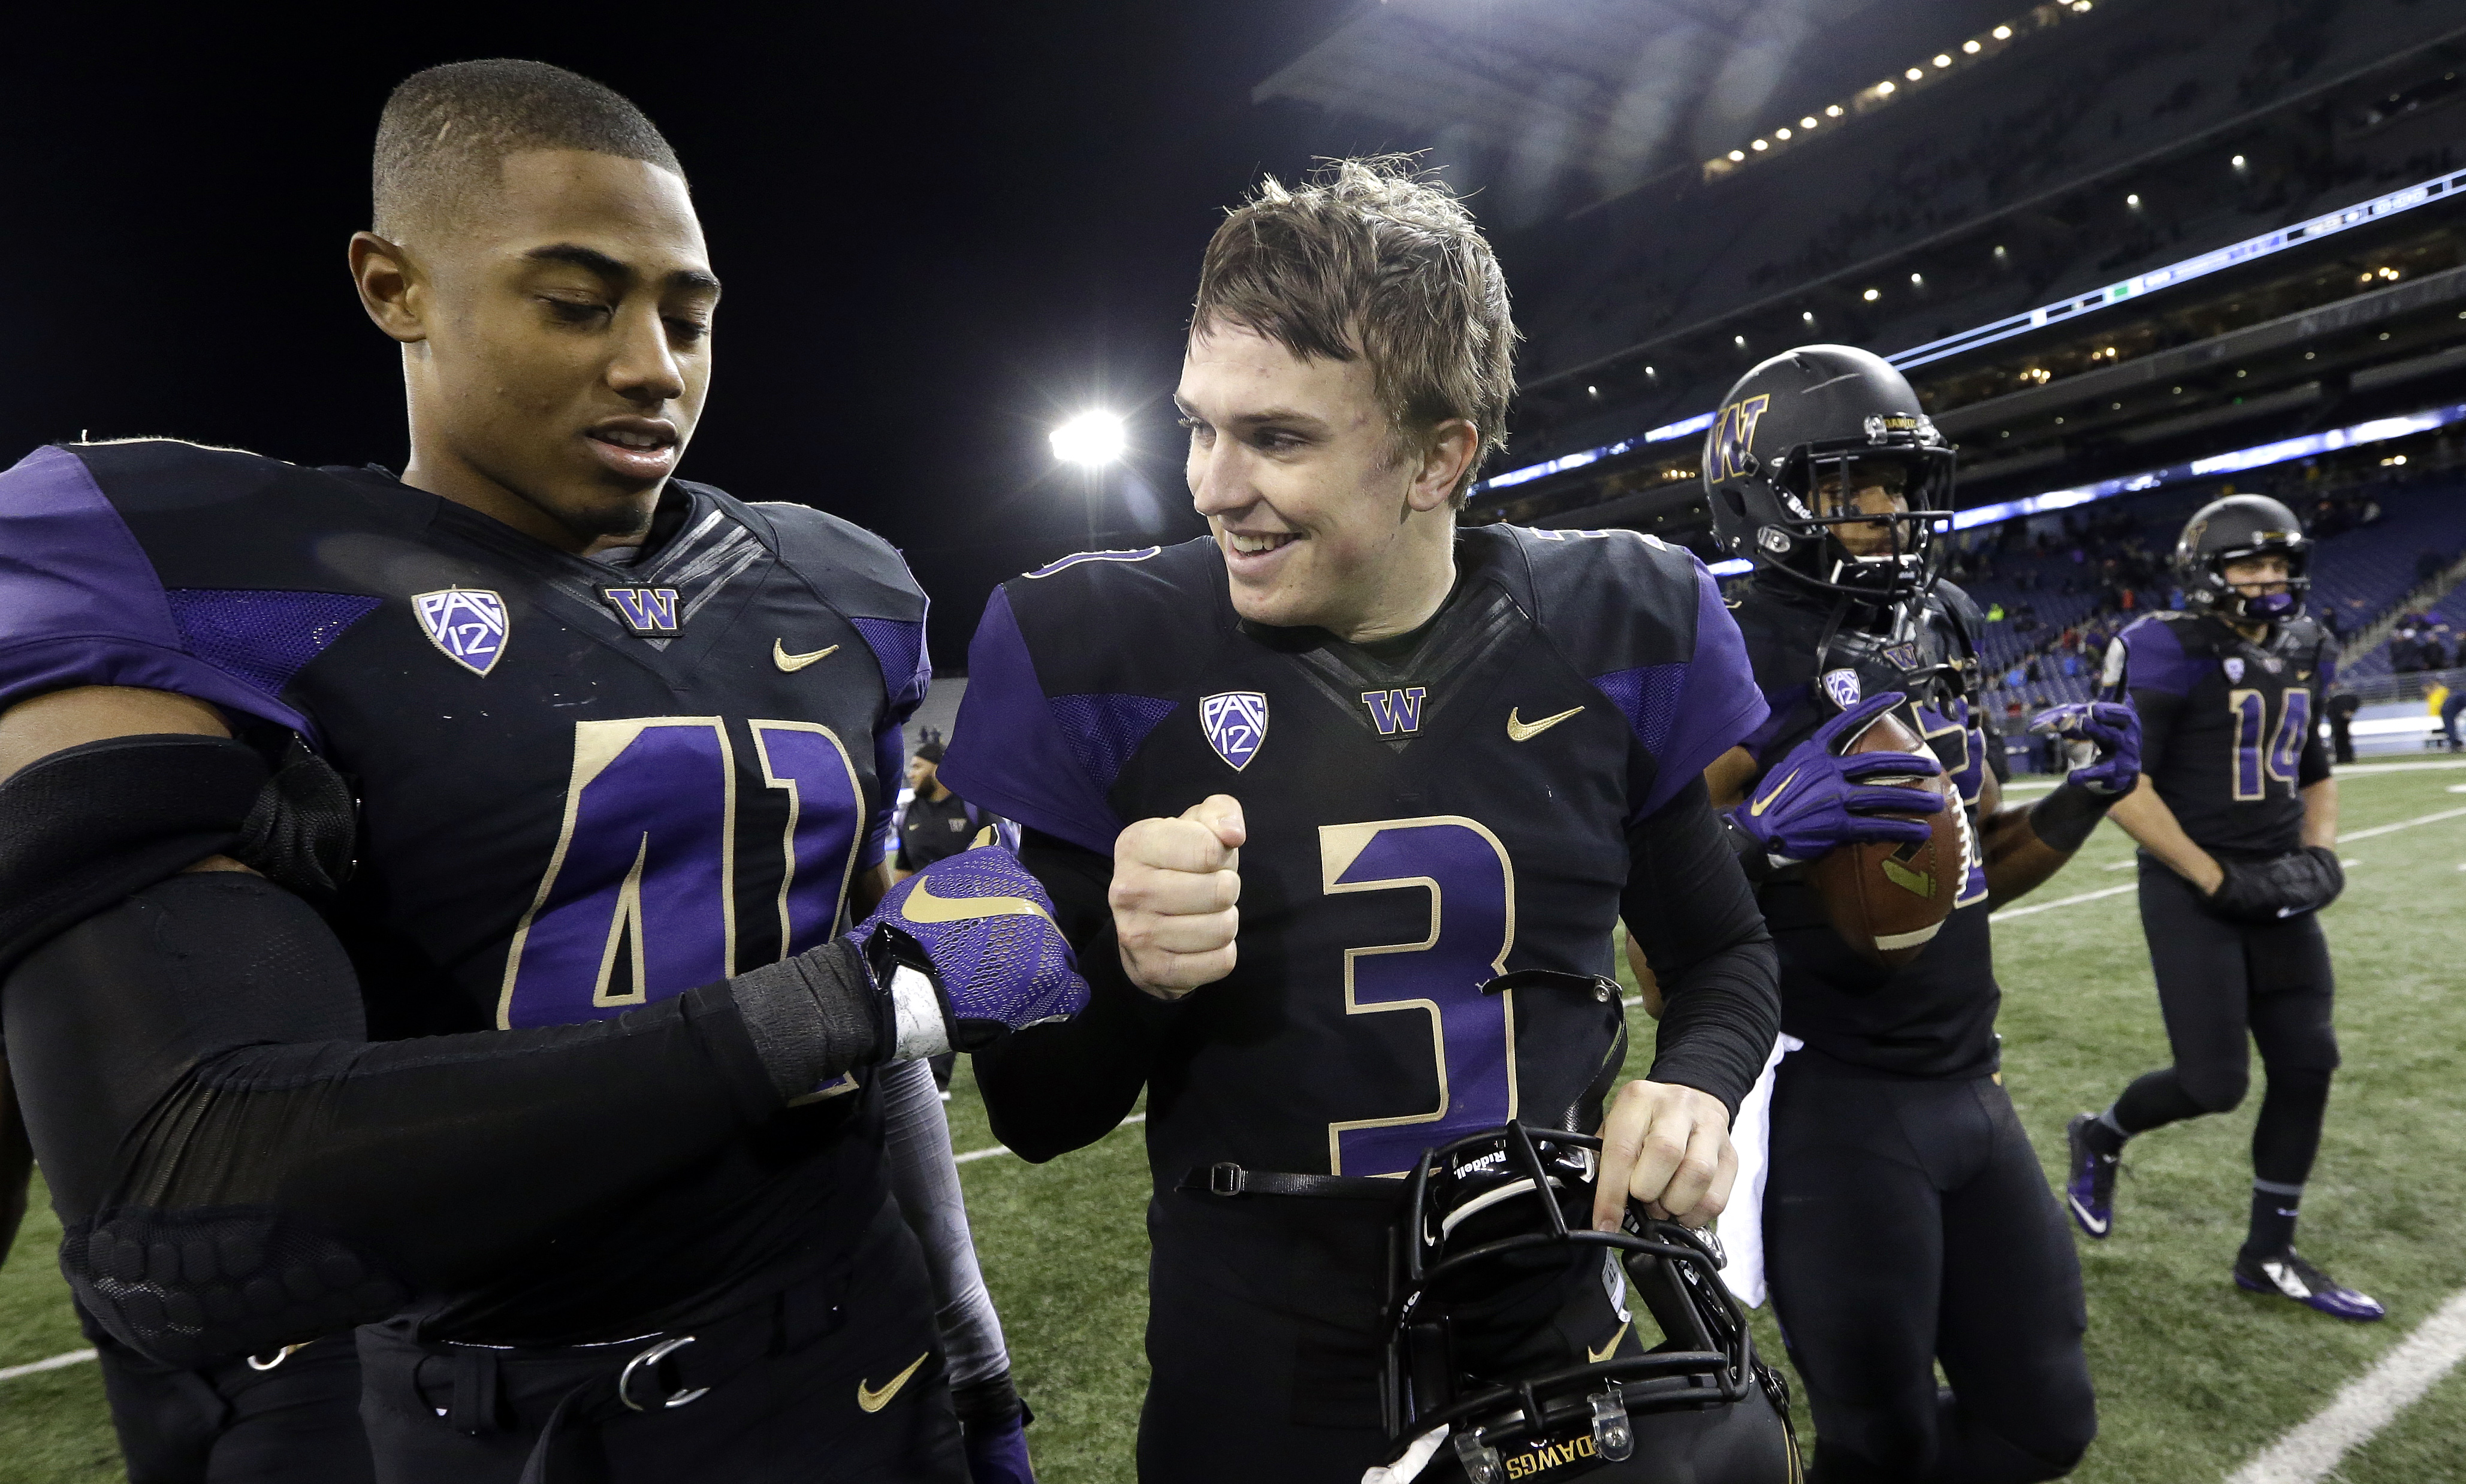 Washington quarterback Jake Browning (3) smiles as he walks off the field with Travis Feeney after an NCAA college football game against Arizona on Saturday, Oct. 31, 2015, in Seattle. Washington won 49-3. (AP Photo/Elaine Thompson)